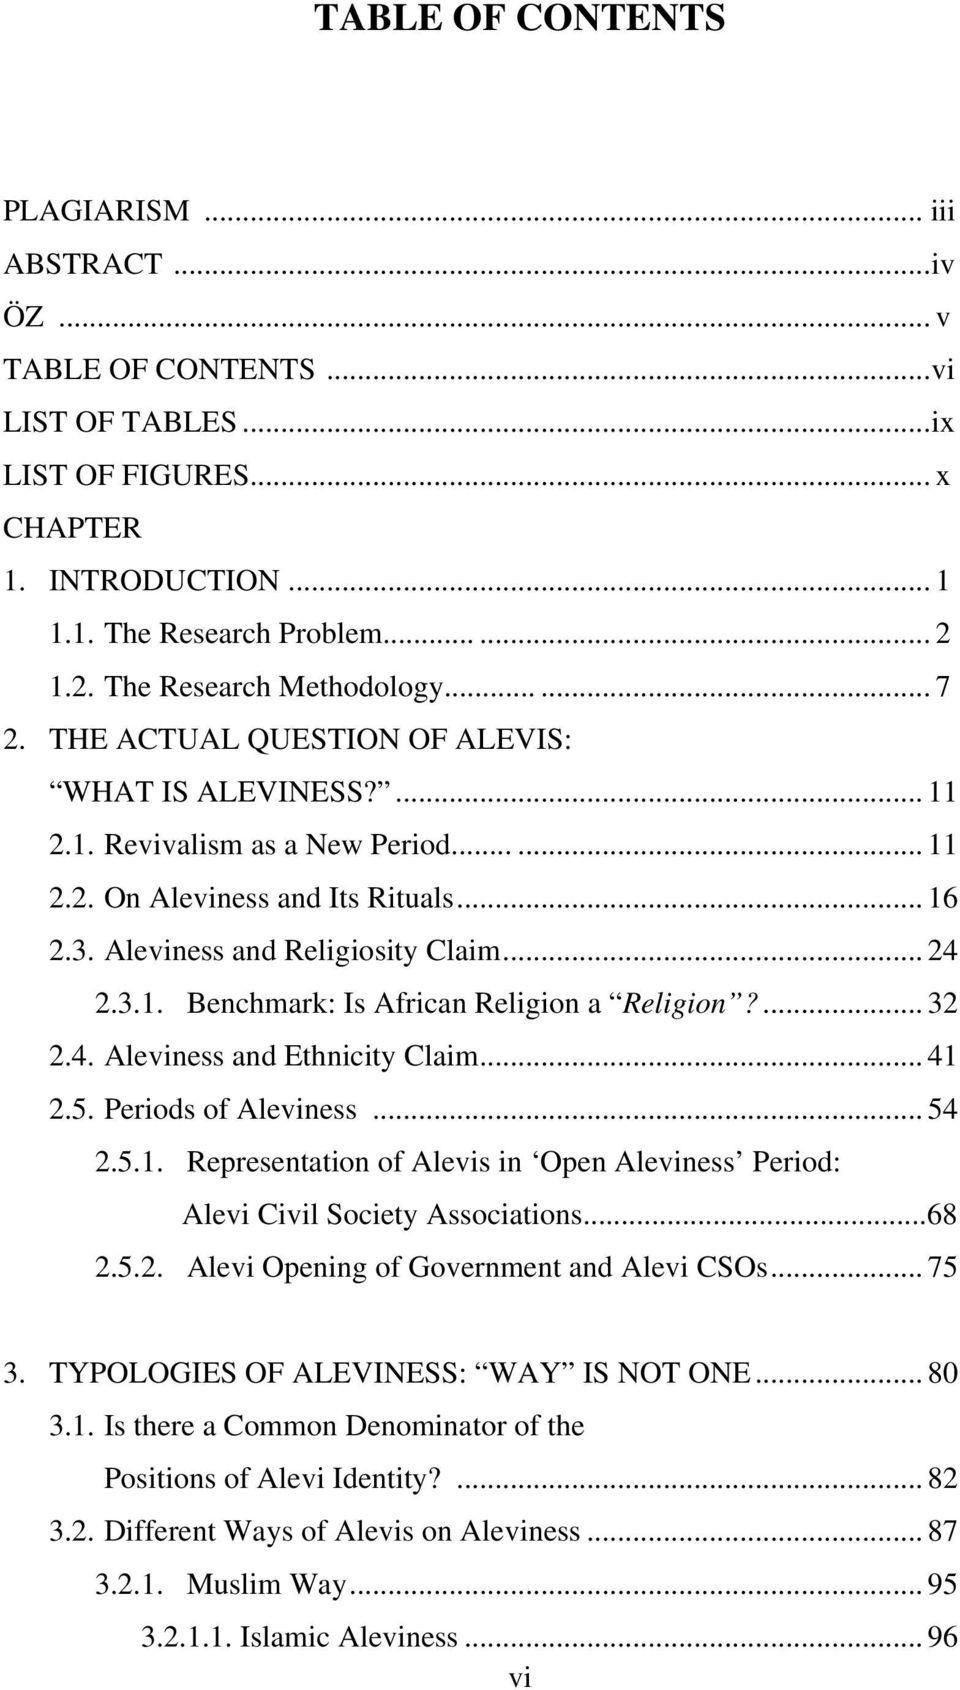 Aleviness and Religiosity Claim... 24 2.3.1. Benchmark: Is African Religion a Religion?... 32 2.4. Aleviness and Ethnicity Claim... 41 2.5. Periods of Aleviness... 54 2.5.1. Representation of Alevis in Open Aleviness Period: Alevi Civil Society Associations.